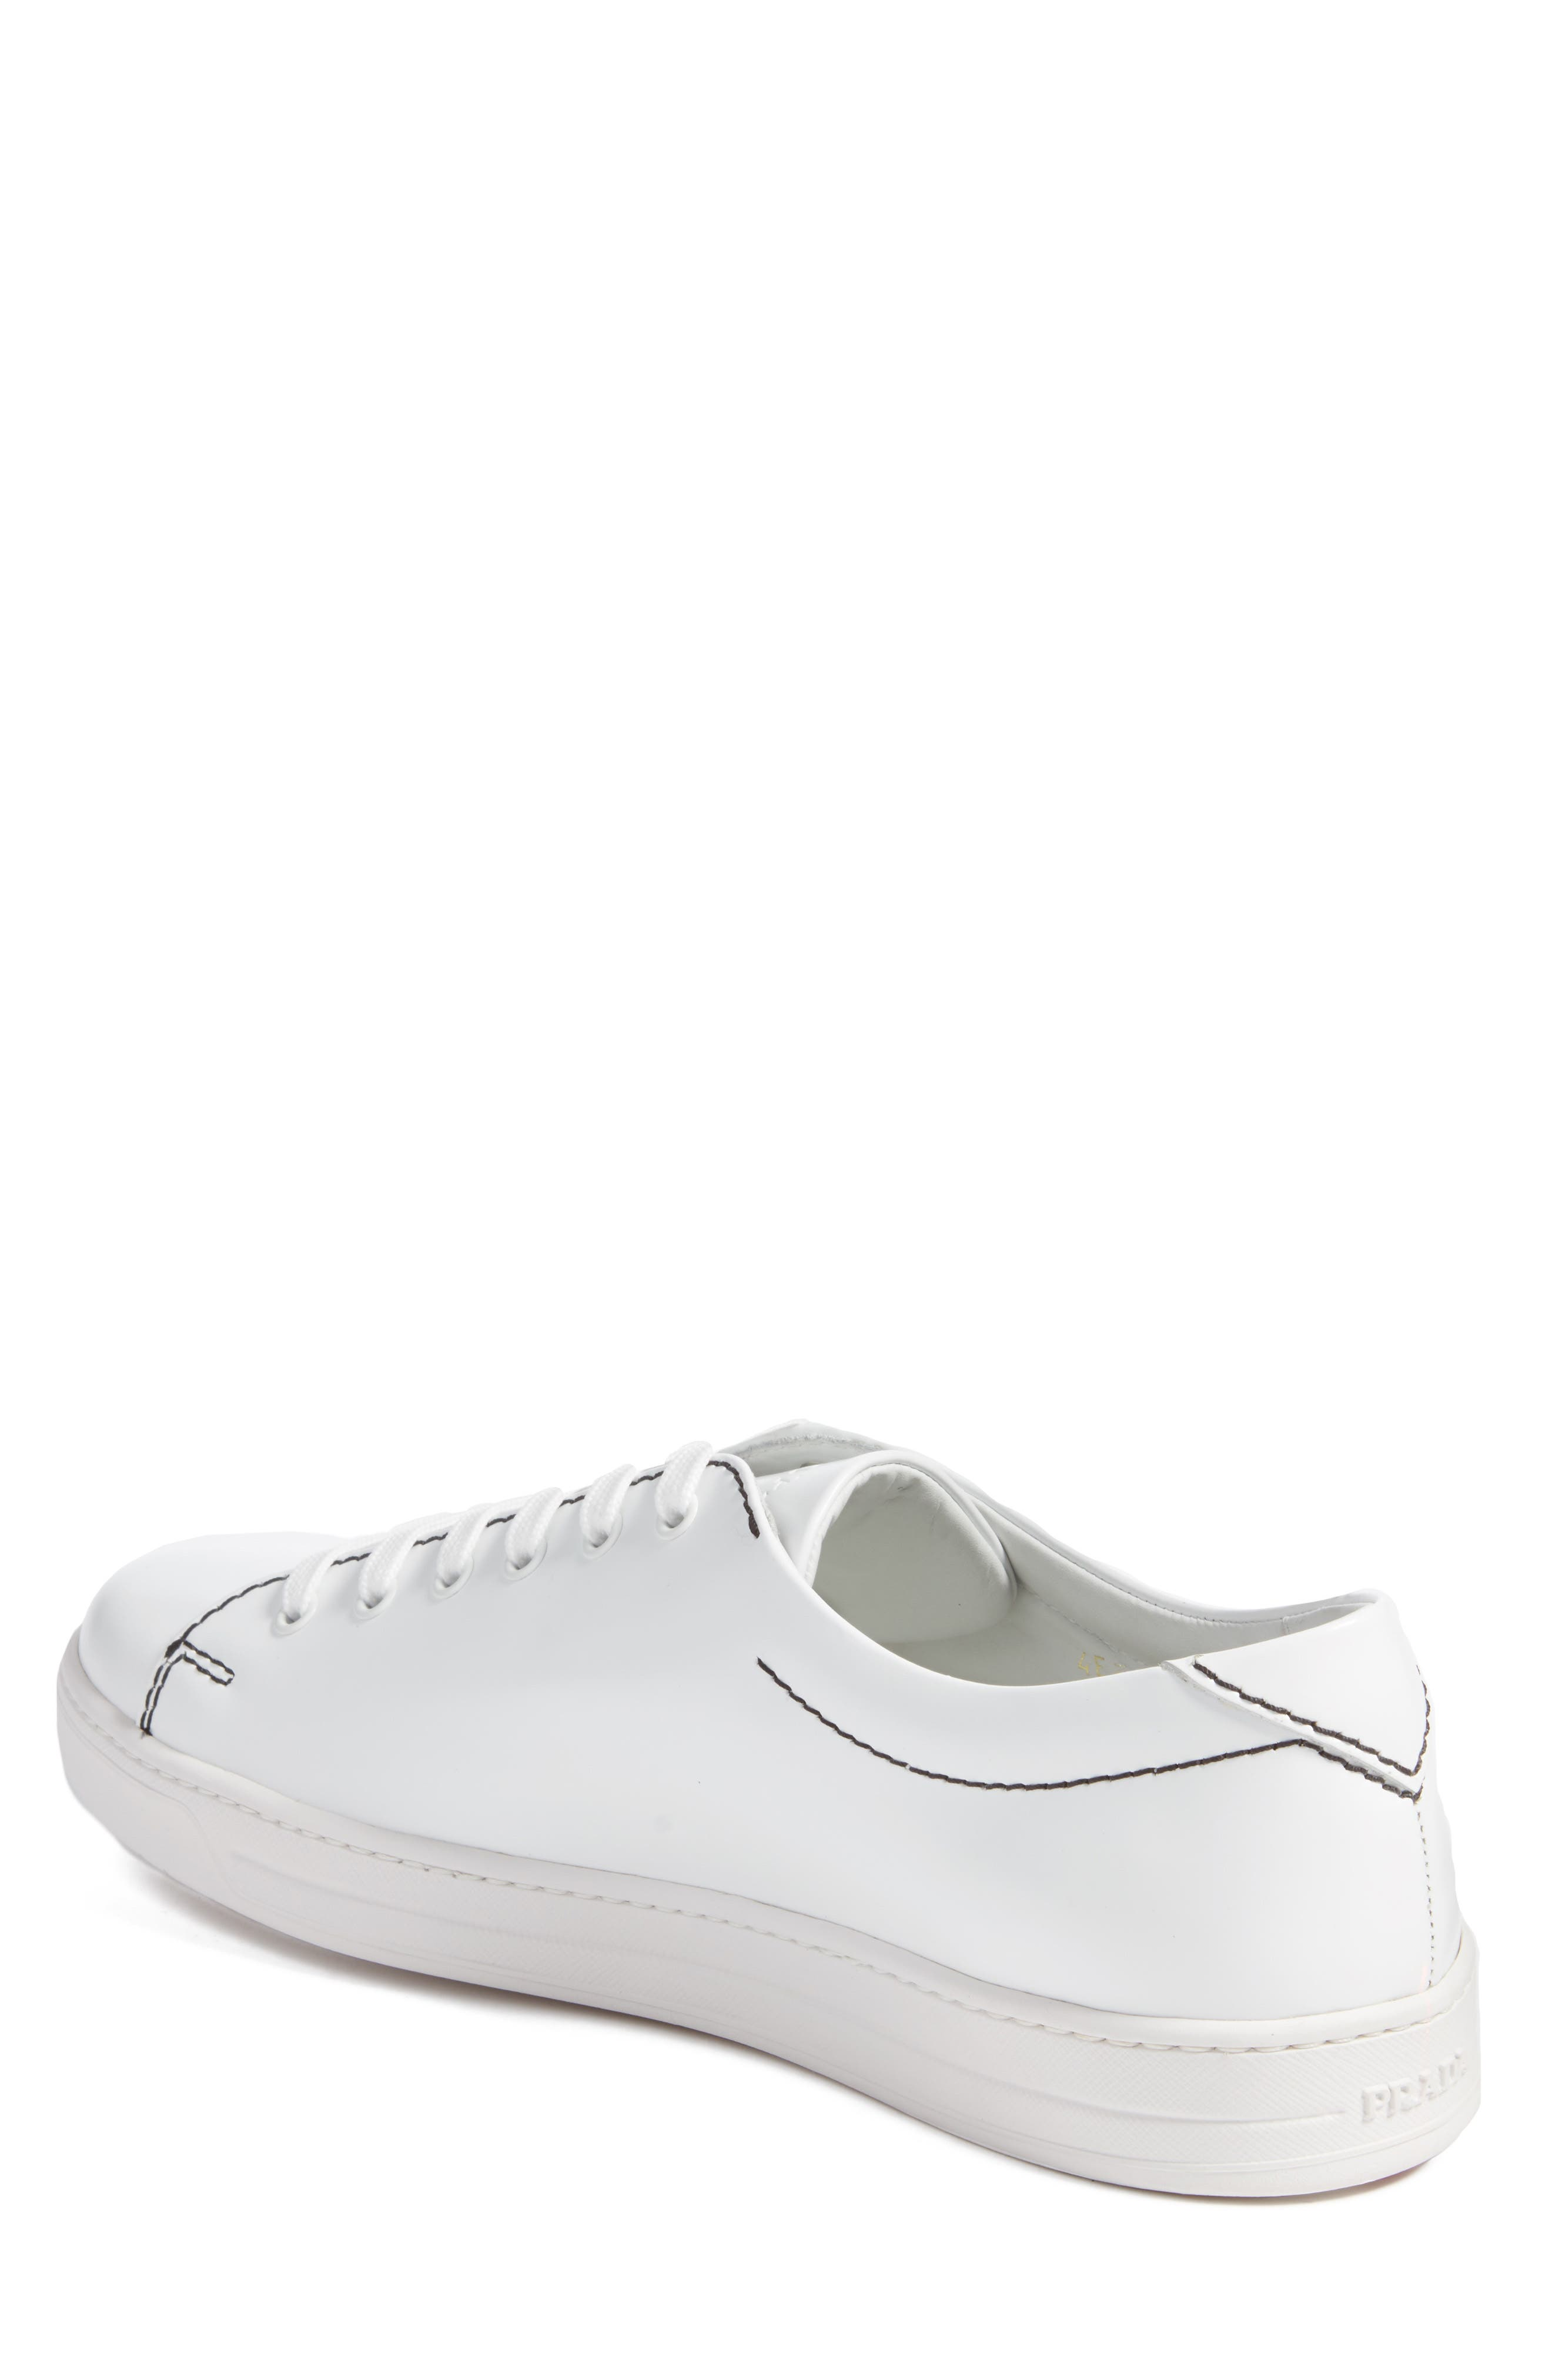 Alternate Image 2  - Prada Linea Rossa Low Top Sneaker (Men)